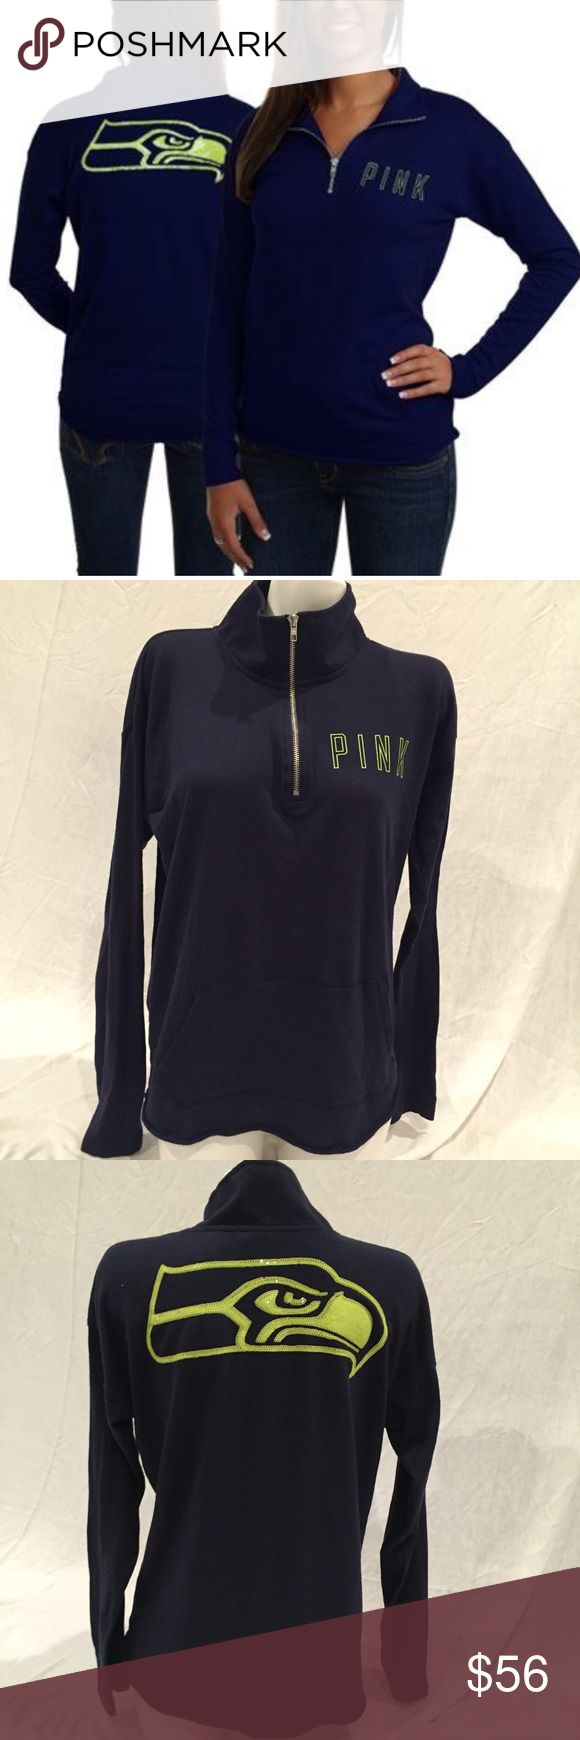 VS Pink NFL Apparel Seattle Seahawks Quarter Zip Victoria's Secret Pink NFL Apparel Seattle Seahawks Quarter Zip; in good condition; navy and neon green sequins PINK Victoria's Secret Tops Sweatshirts & Hoodies